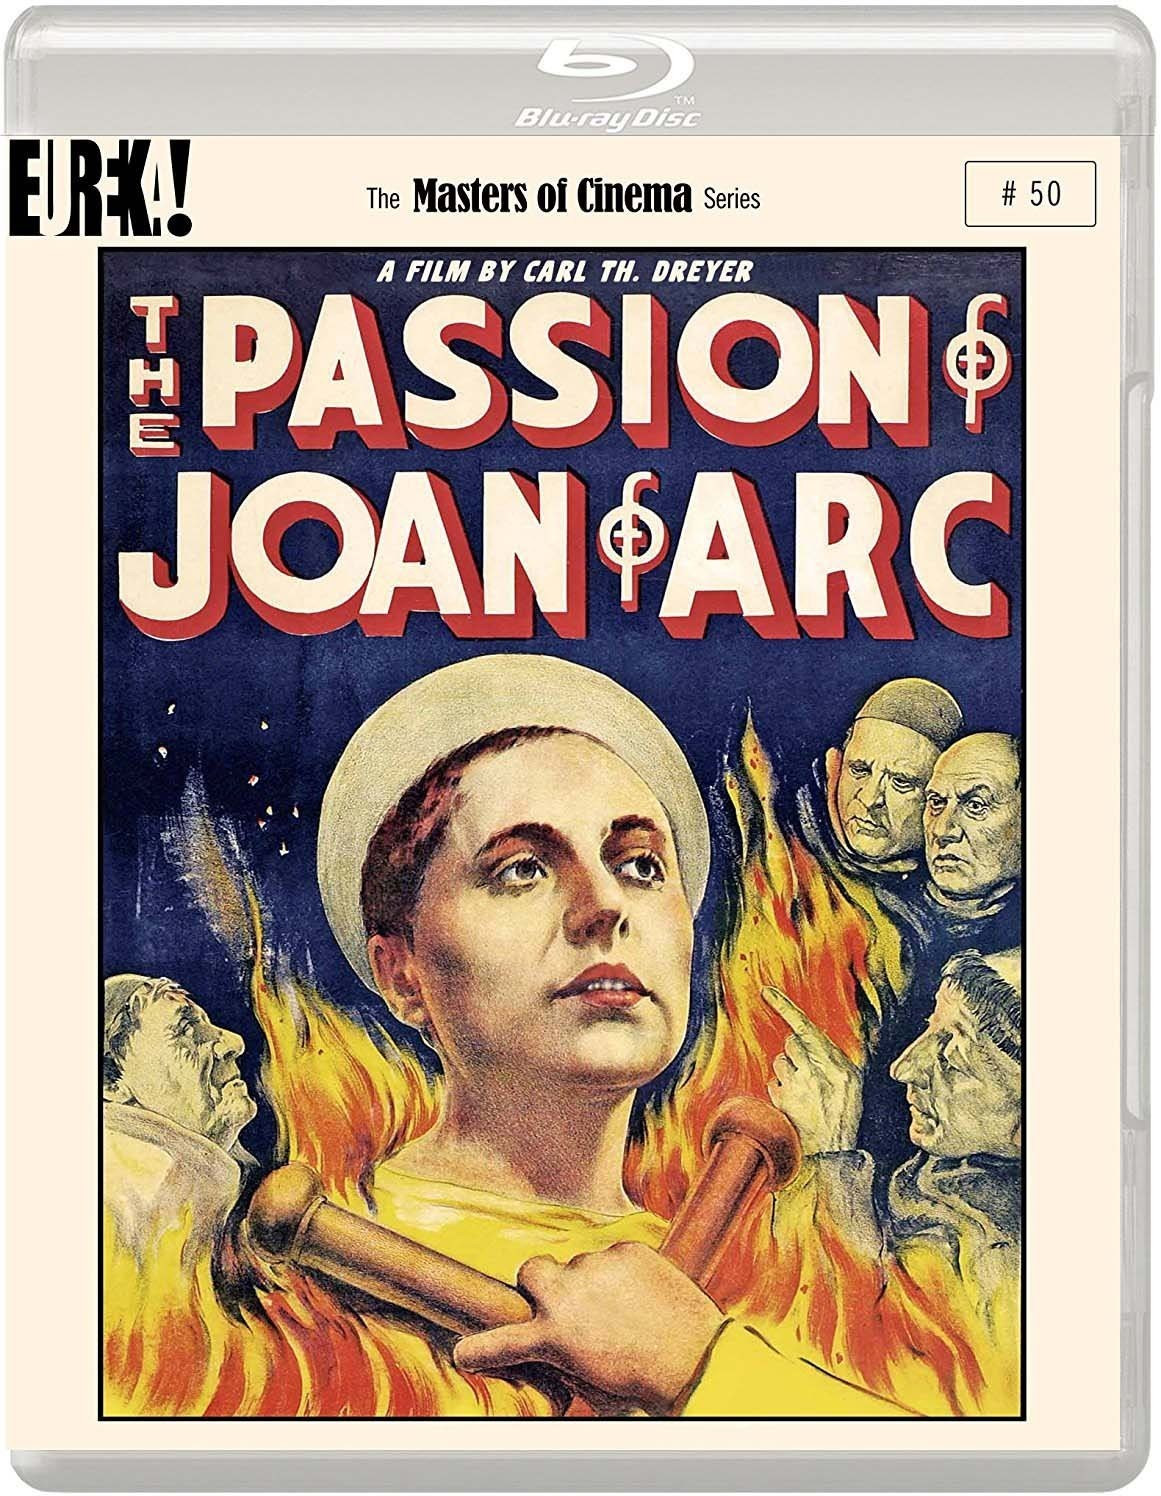 Image of The Passion of Joan of Arc (1928) (Masters of Cinema) [Blu-ray]